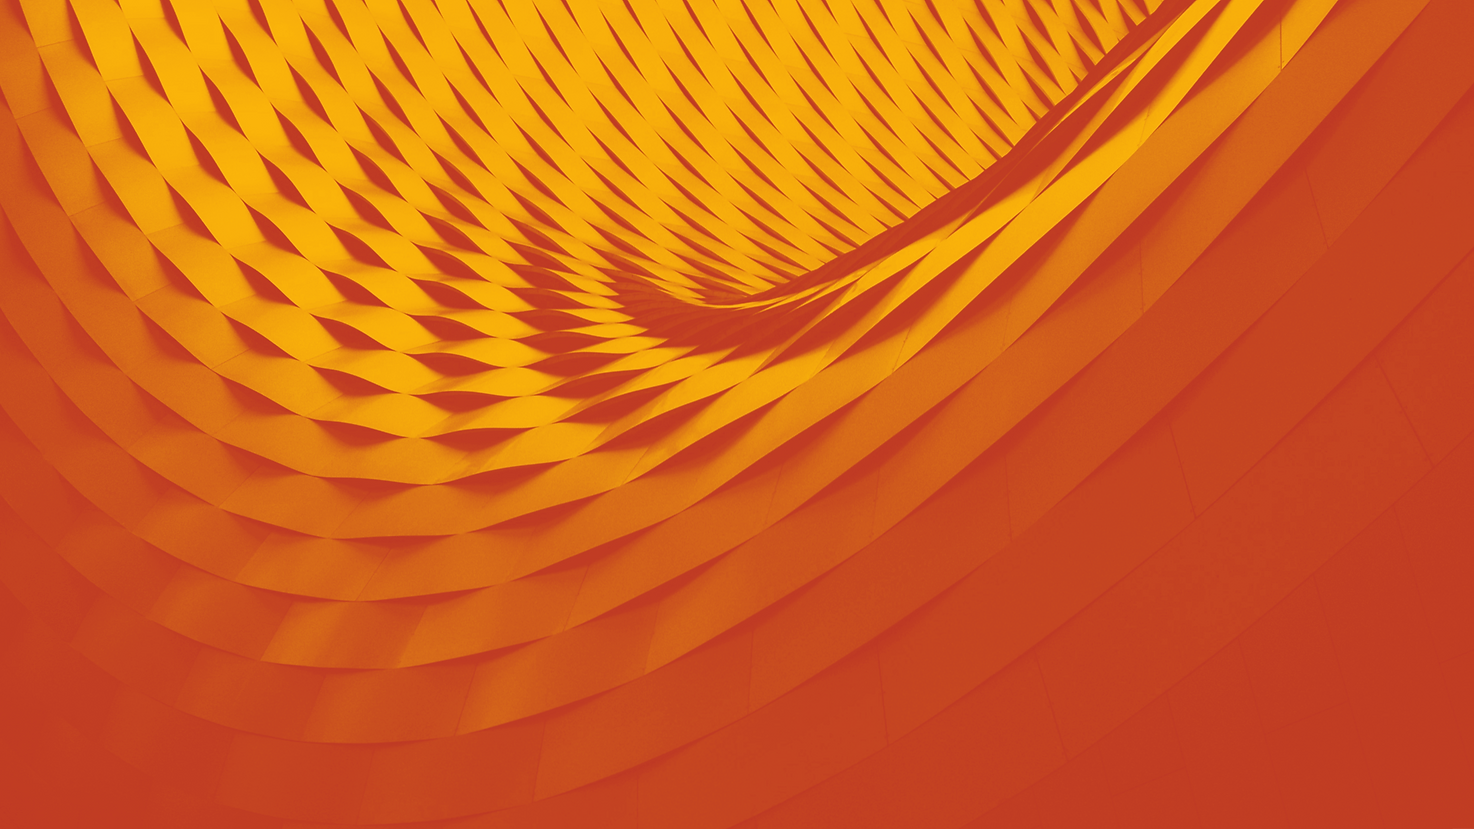 Gradient%2520Texture_edited_edited.png